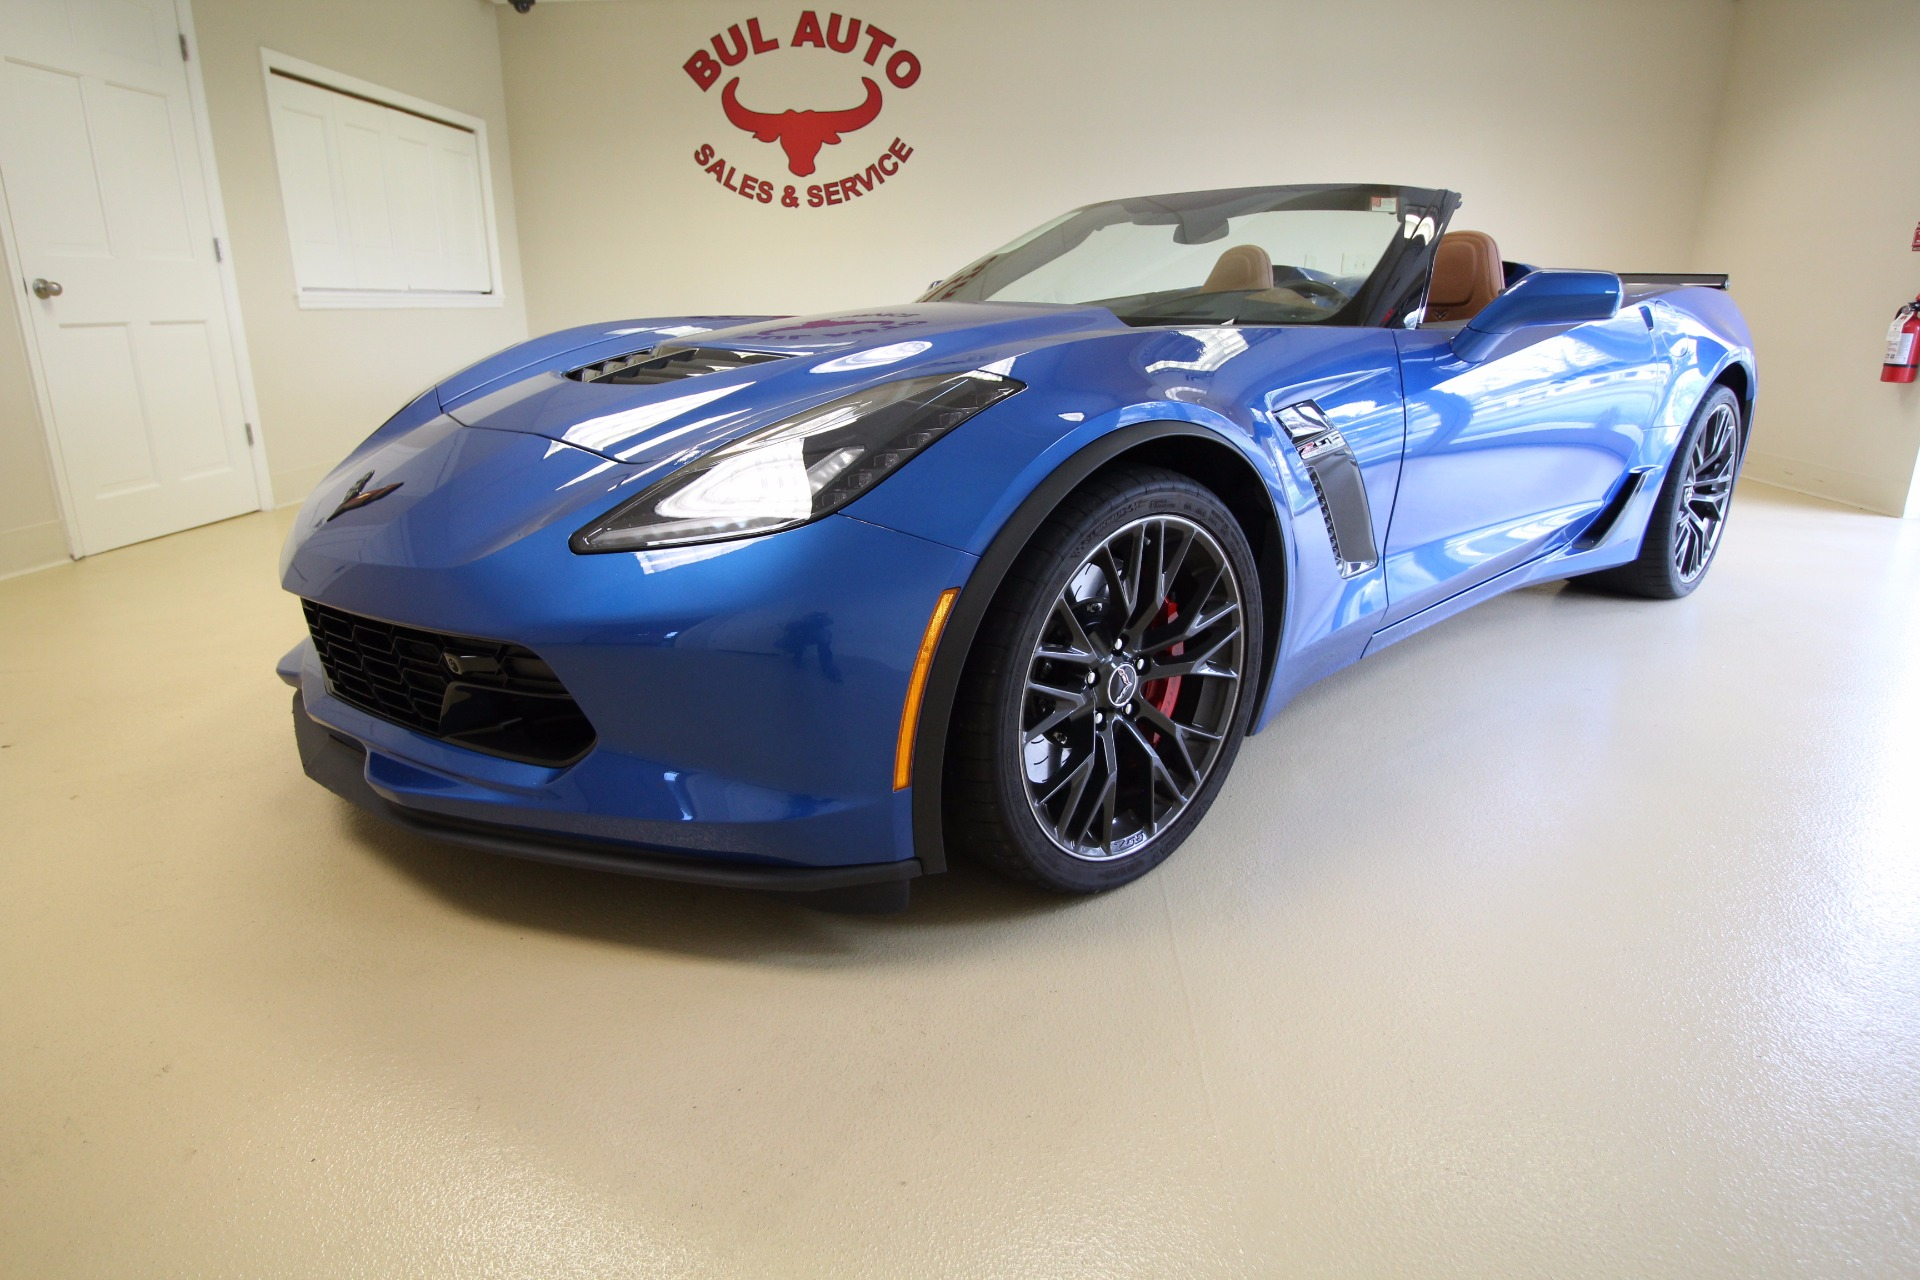 2016 chevrolet corvette 2lz z06 convertible stock 17233 for sale near albany ny ny. Black Bedroom Furniture Sets. Home Design Ideas